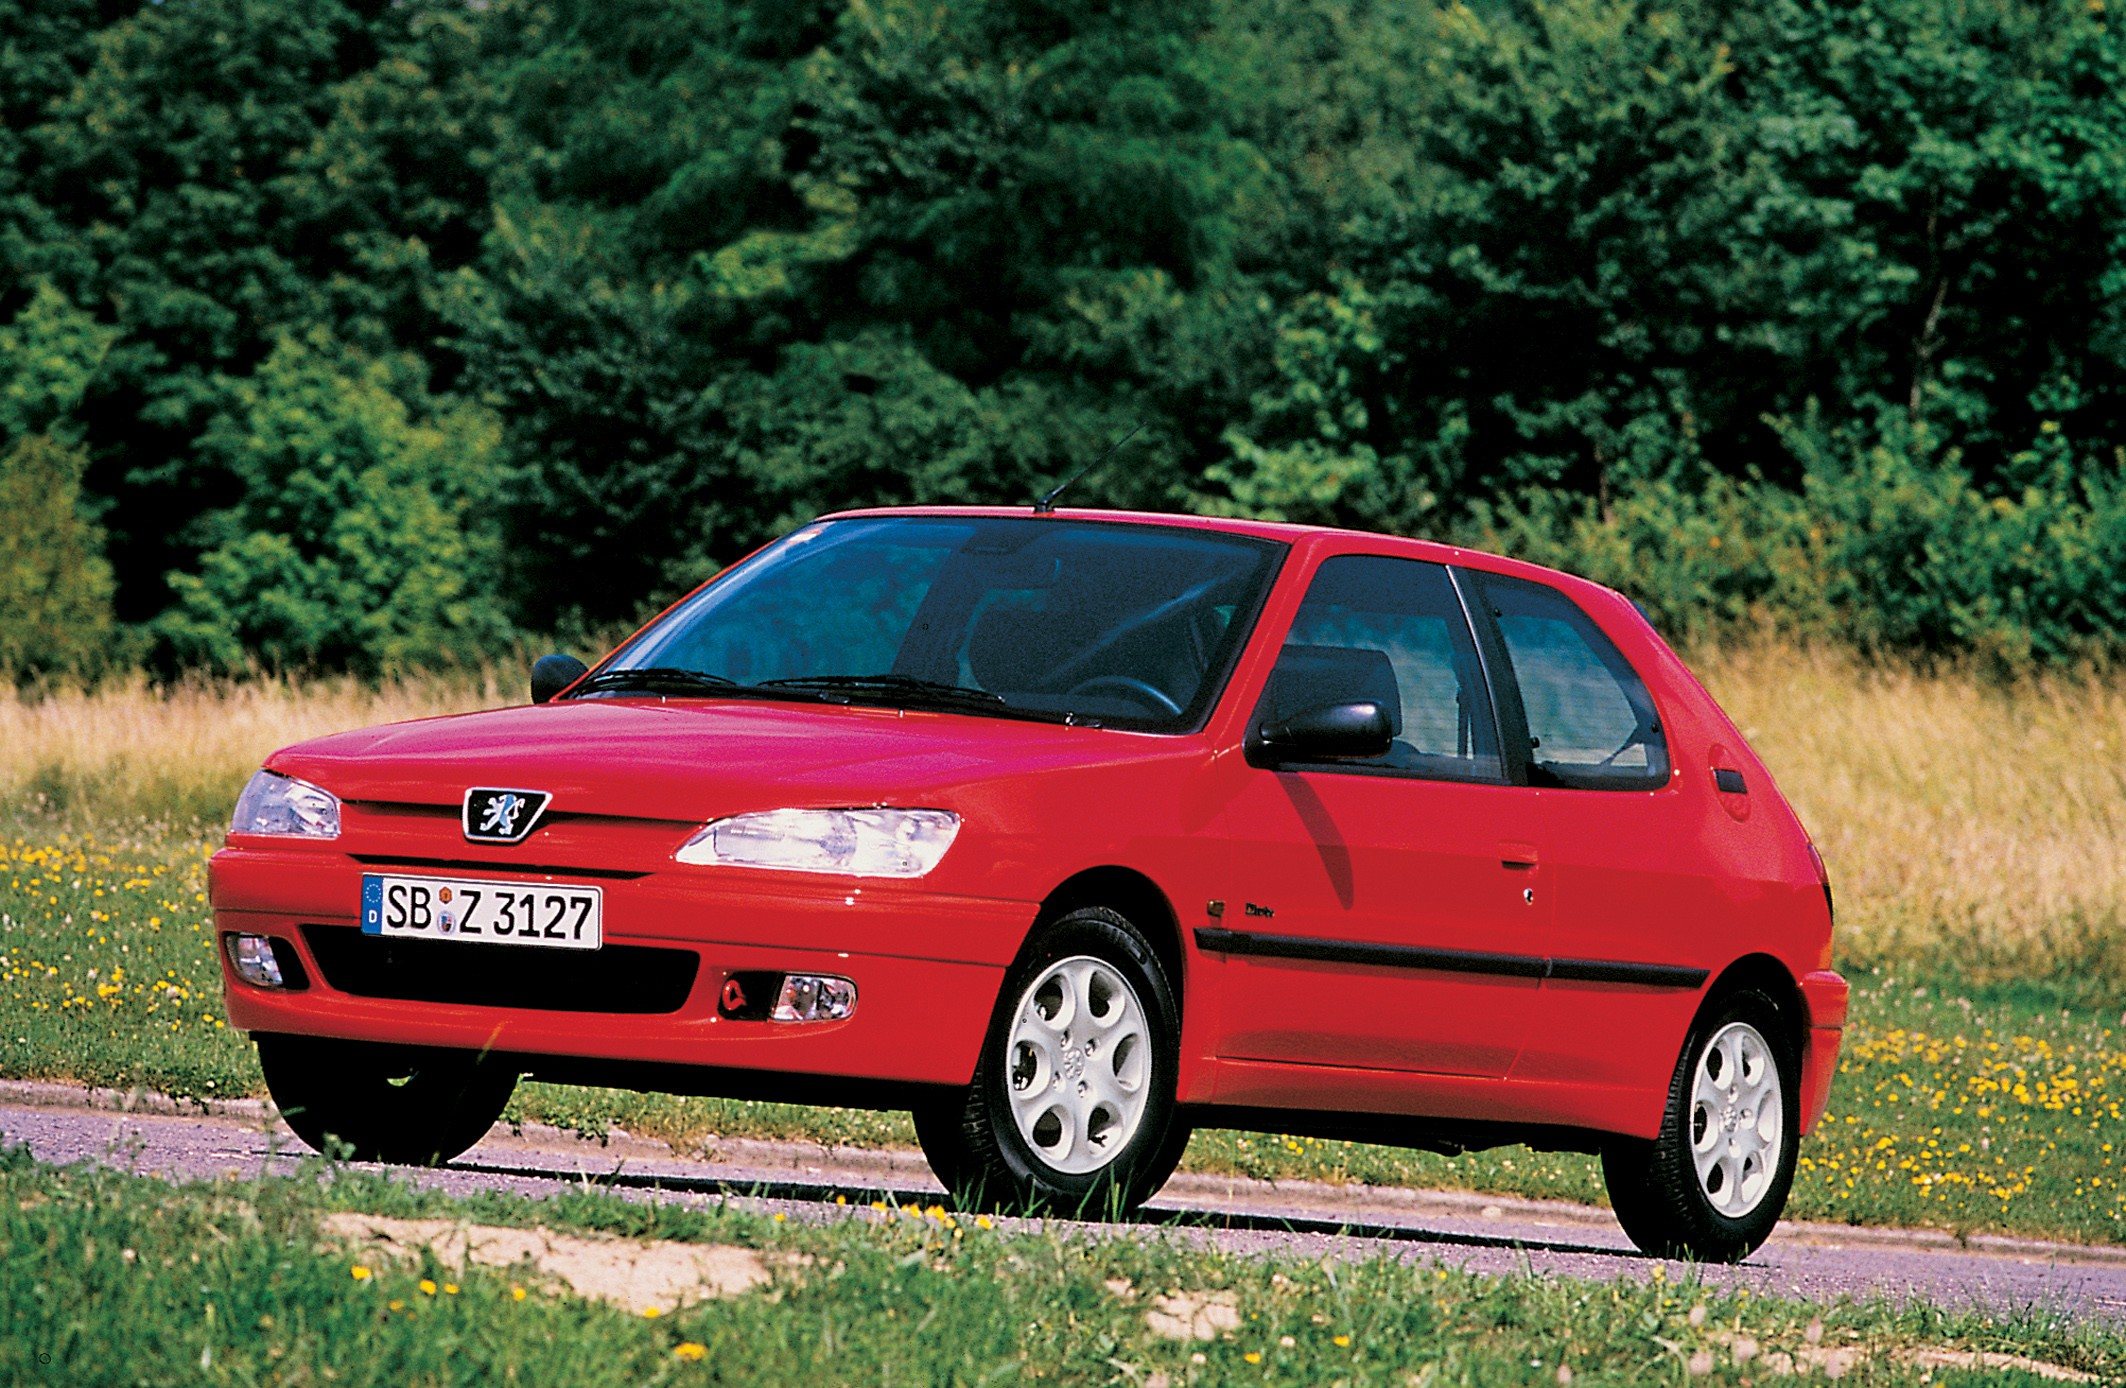 Peugeot 306 1993 - 2002 Hatchback 3 door #4